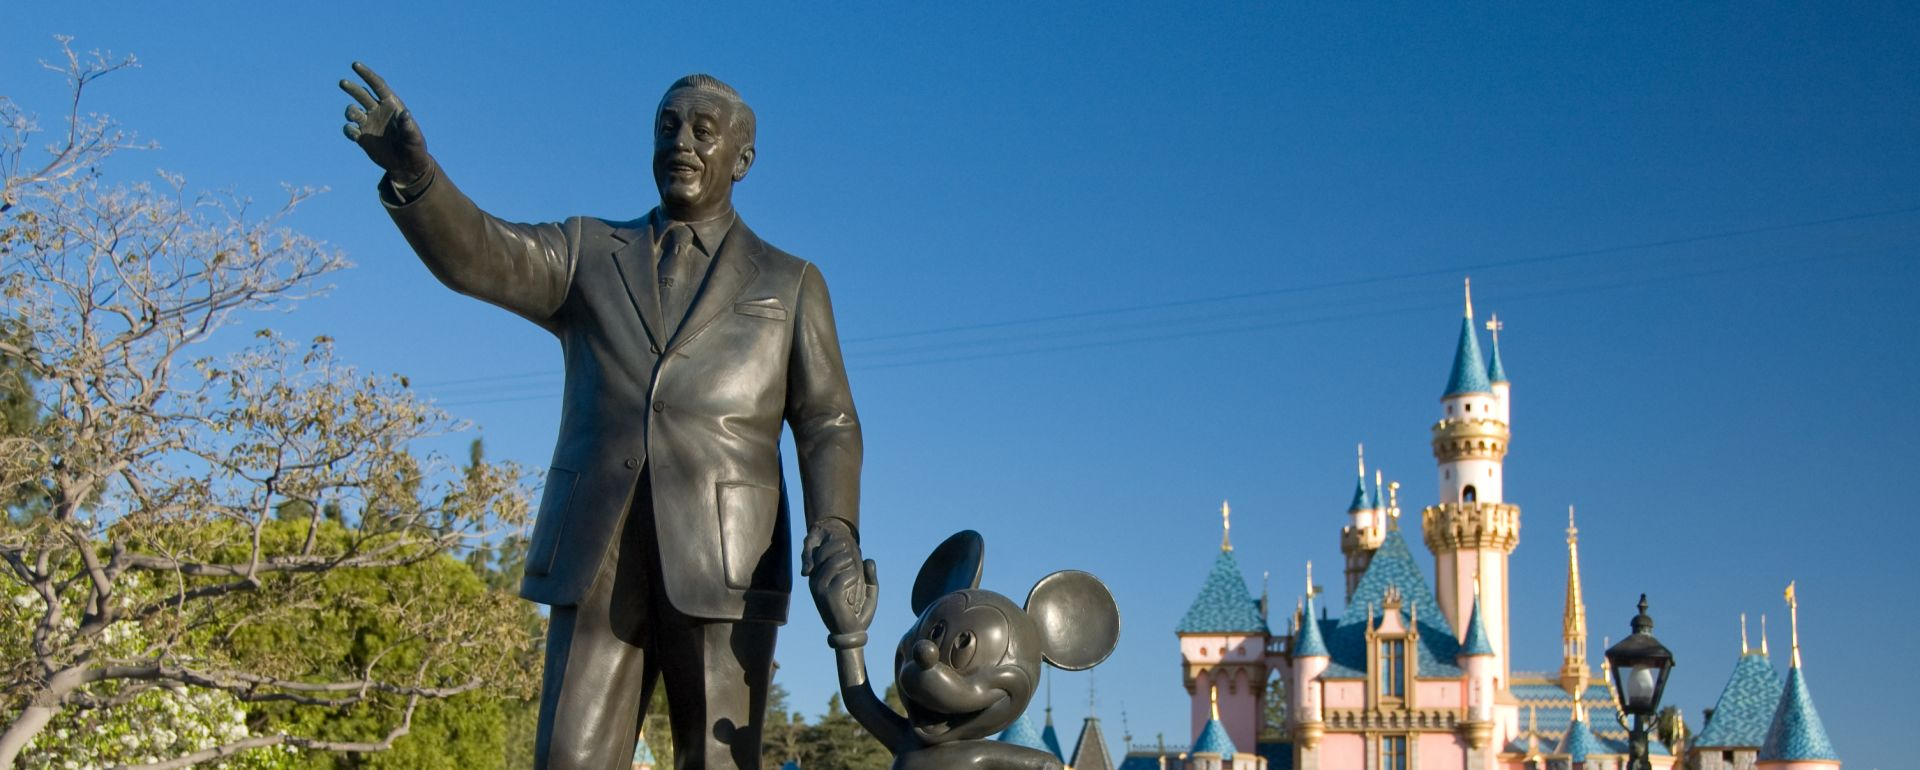 Disneyland statue of walt and mickey